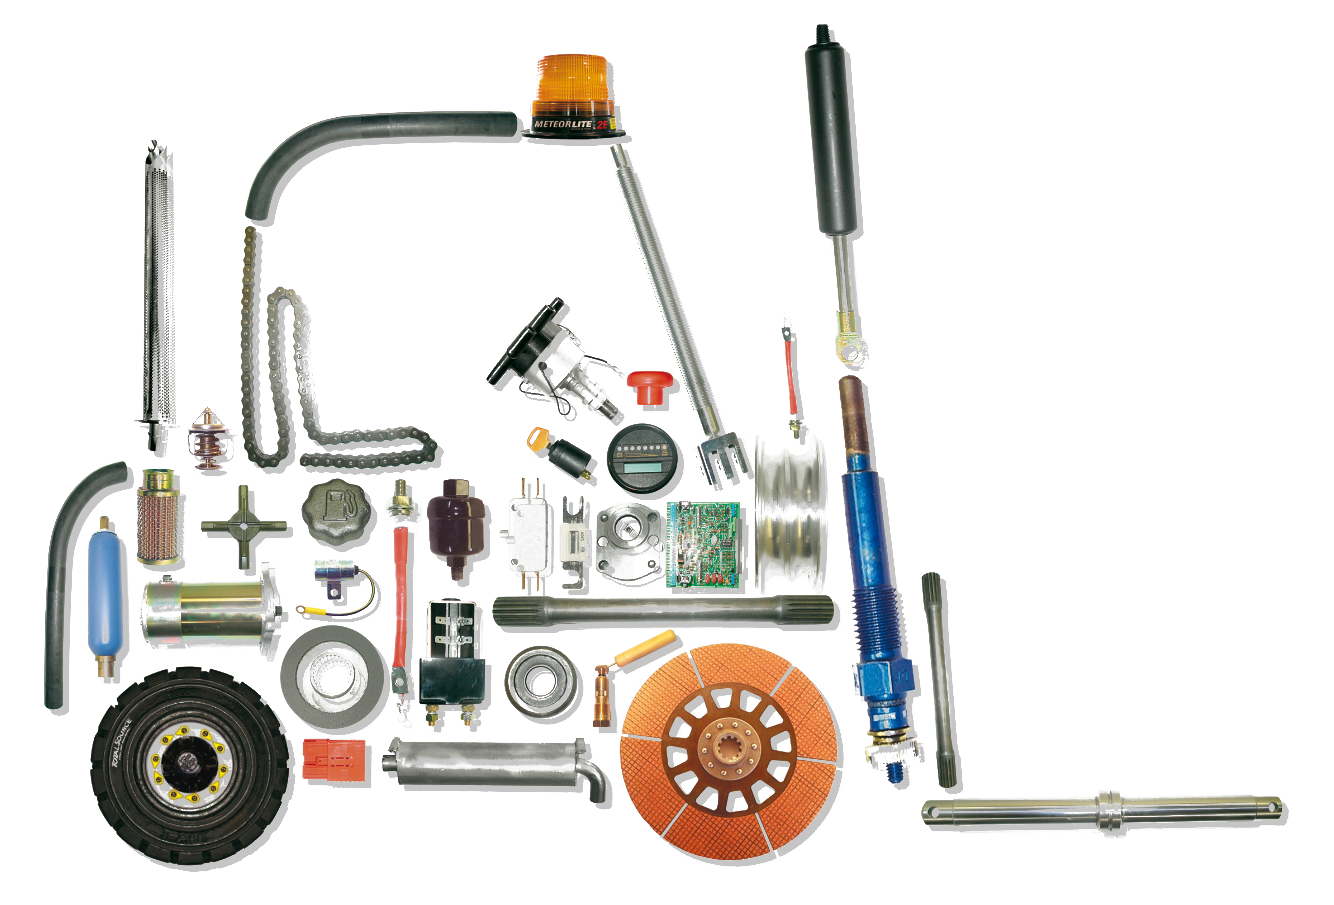 Fork Lift Parts : Material handling news and innovations from stärke the